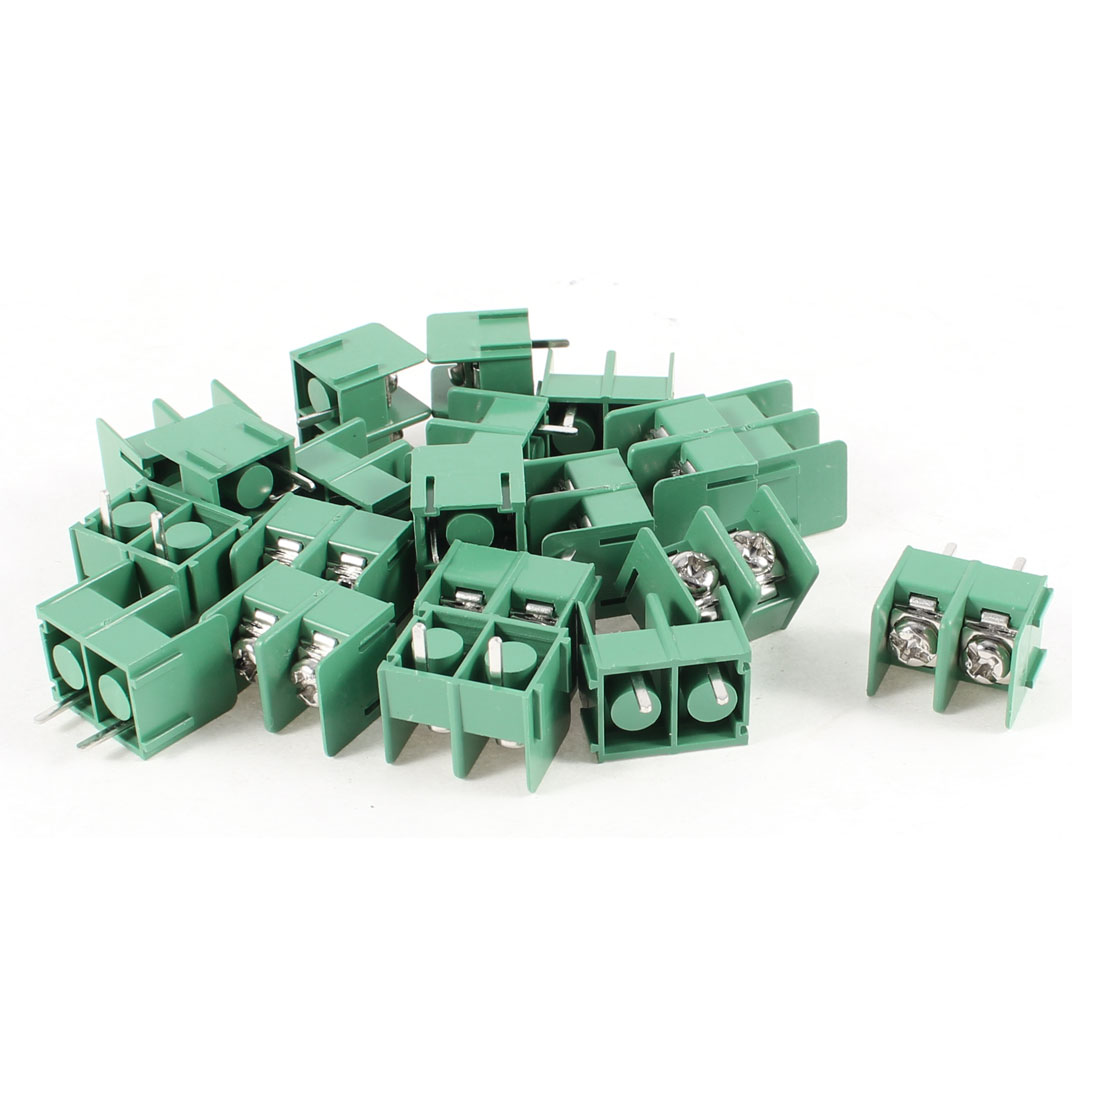 20 Pcs 300V 20A 2 Positions 7.62mm Pitch Pluggable Terminal Block Green